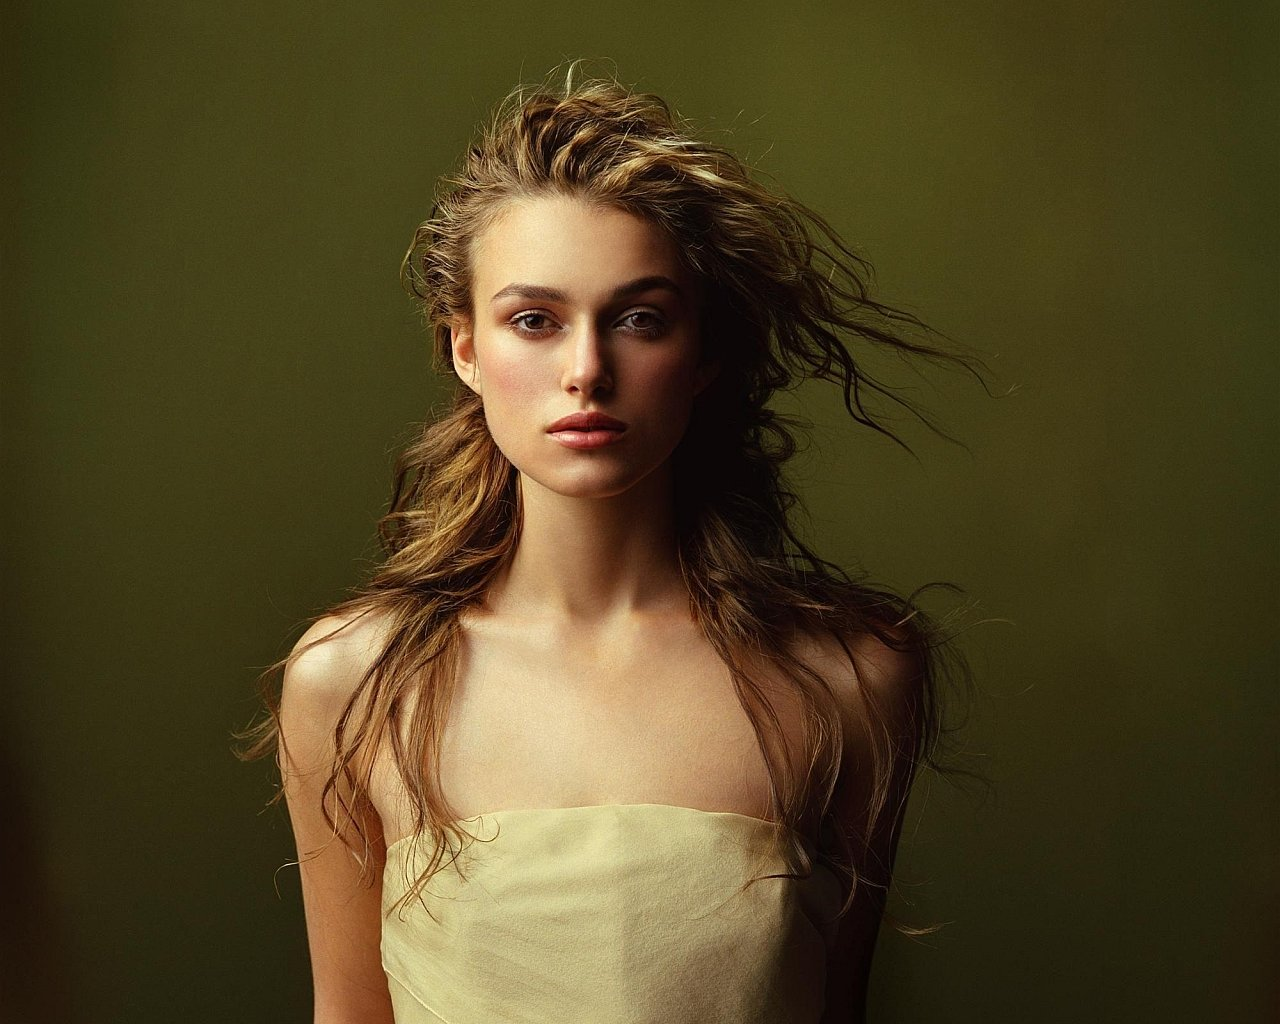 Free download Keira Knightley background ID:50295 hd 1280x1024 for desktop